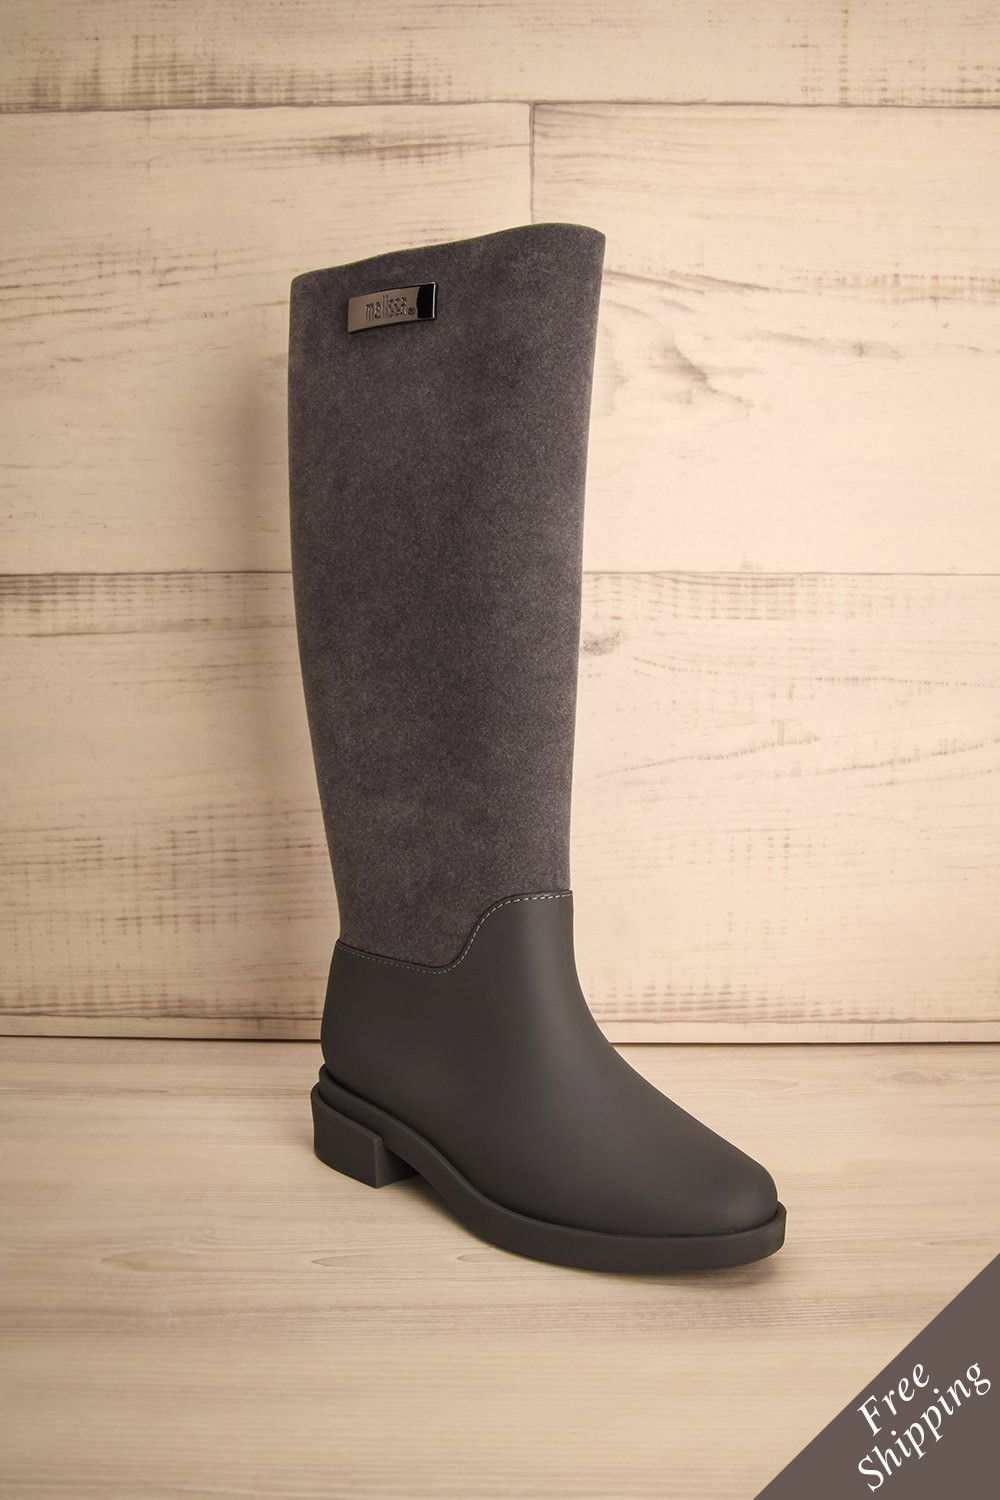 Beau temps, mauvais temps, elle était toujours prête ! Good times or bad, she was ready for anything! Grey boots https://1861.ca/products/hearst-grey